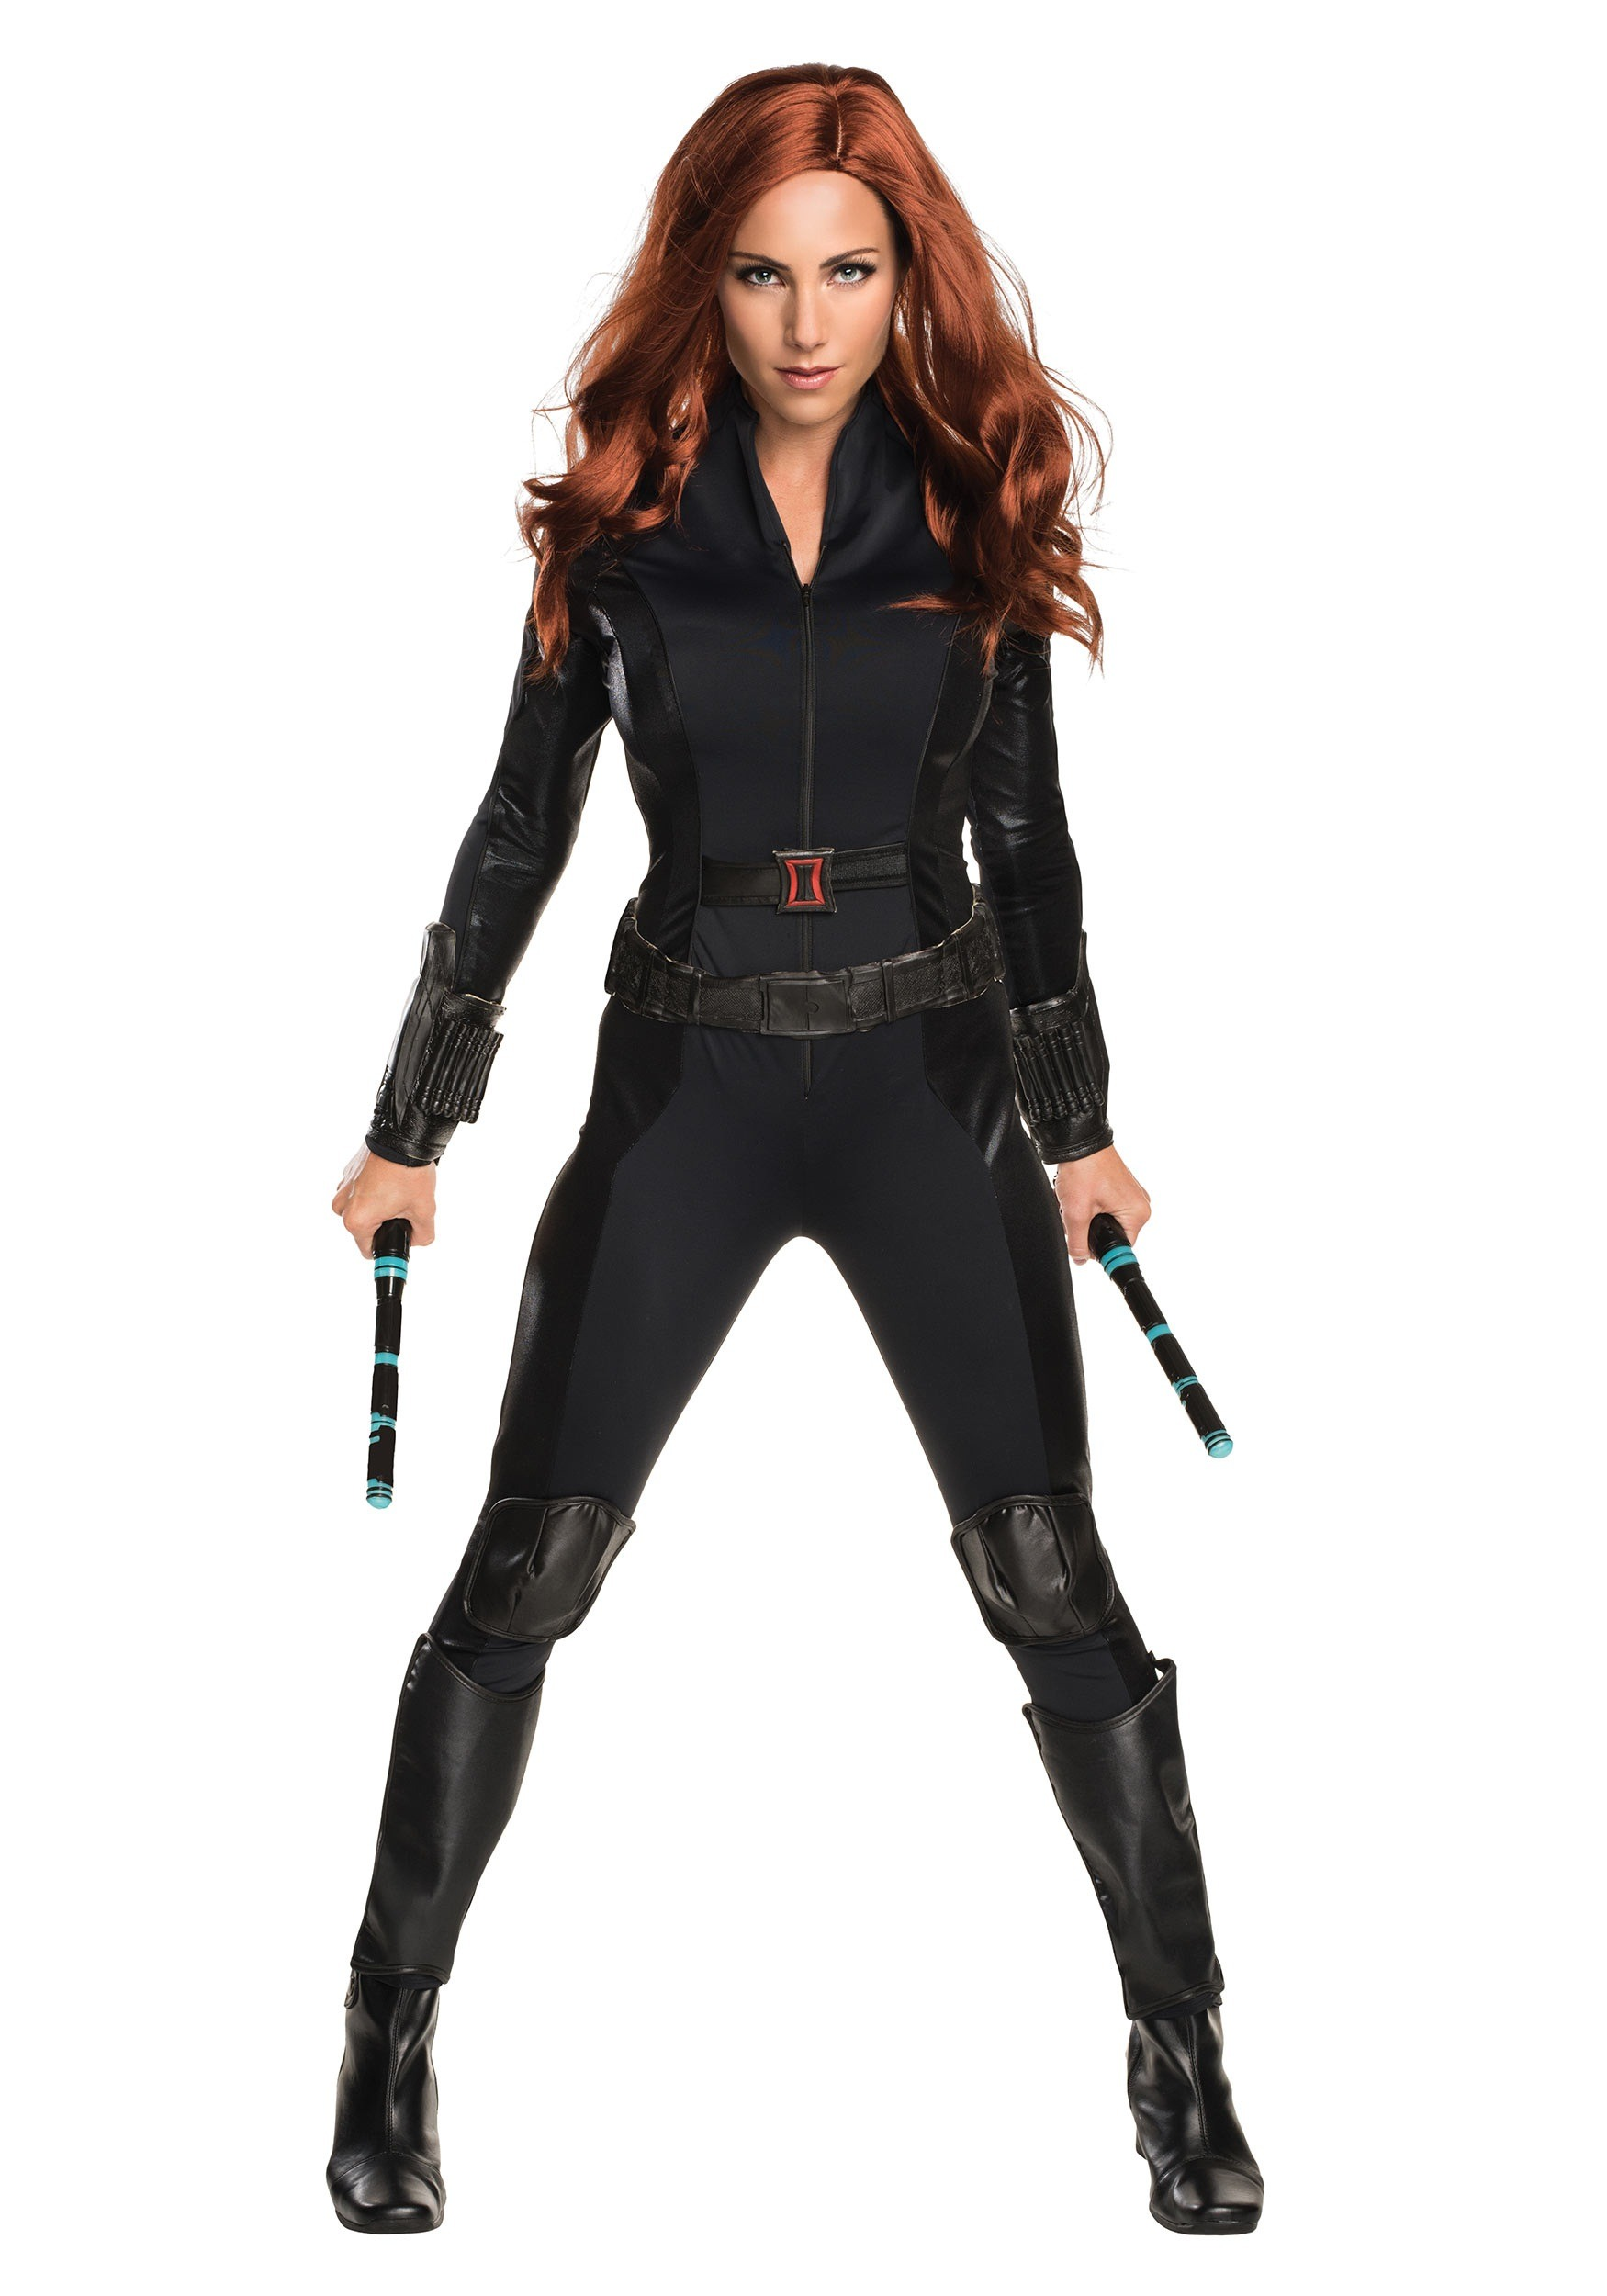 How to make a marvel black widow costume - photo#19